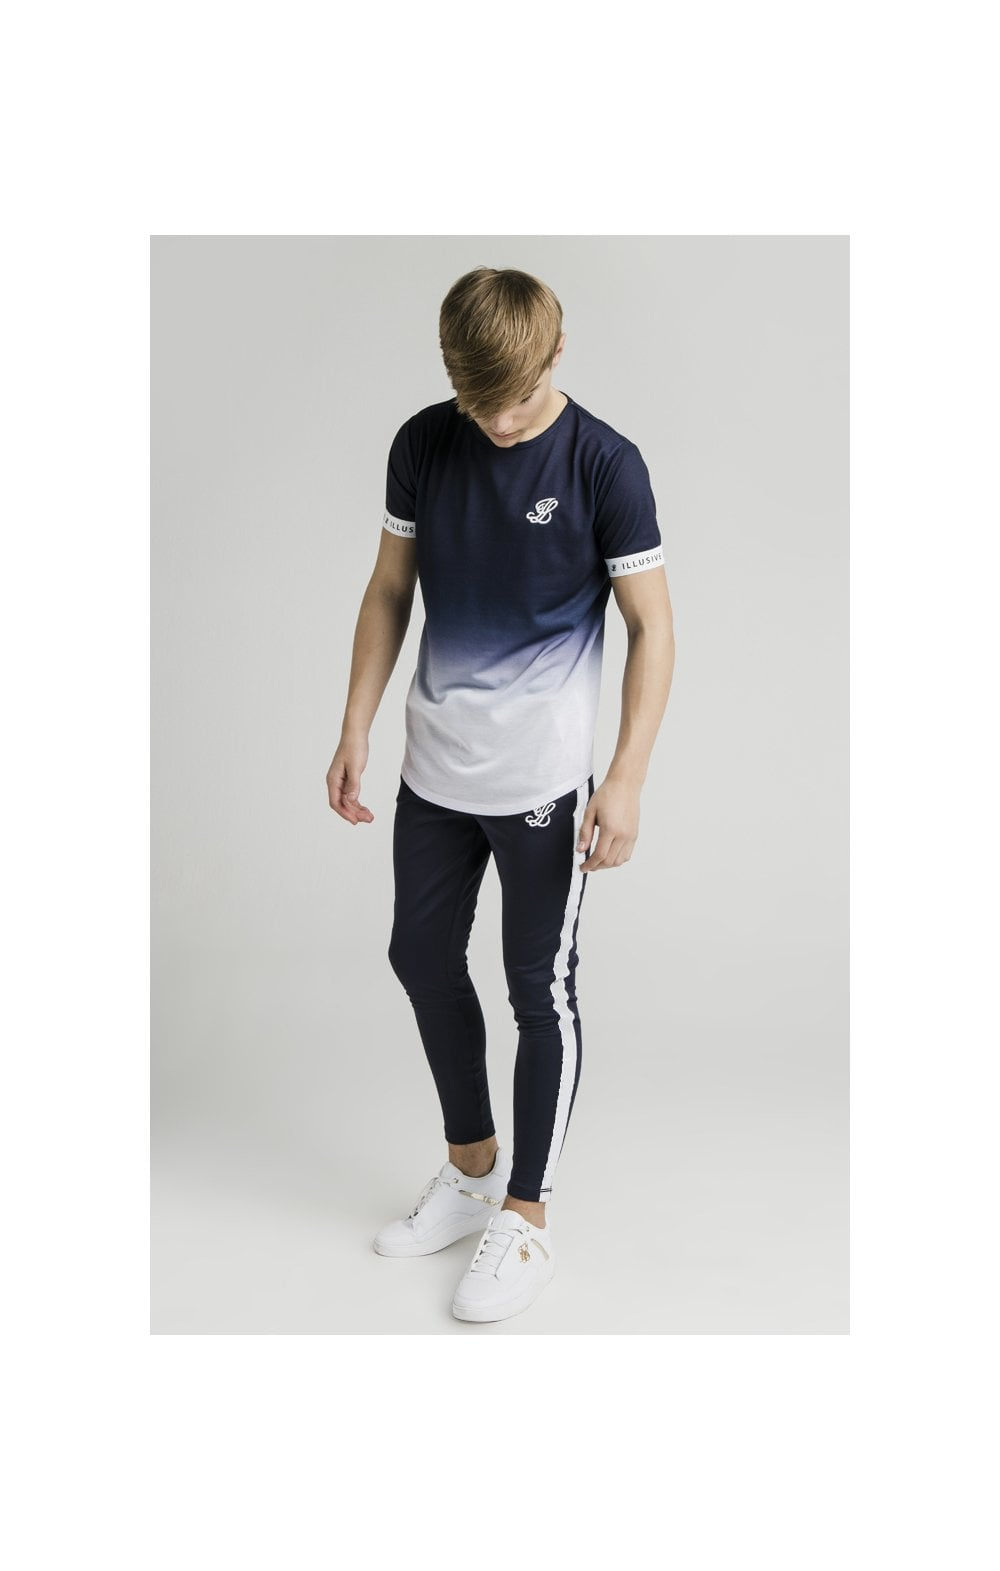 Load image into Gallery viewer, Illusive London Athlete Joggers - Navy & White (3)